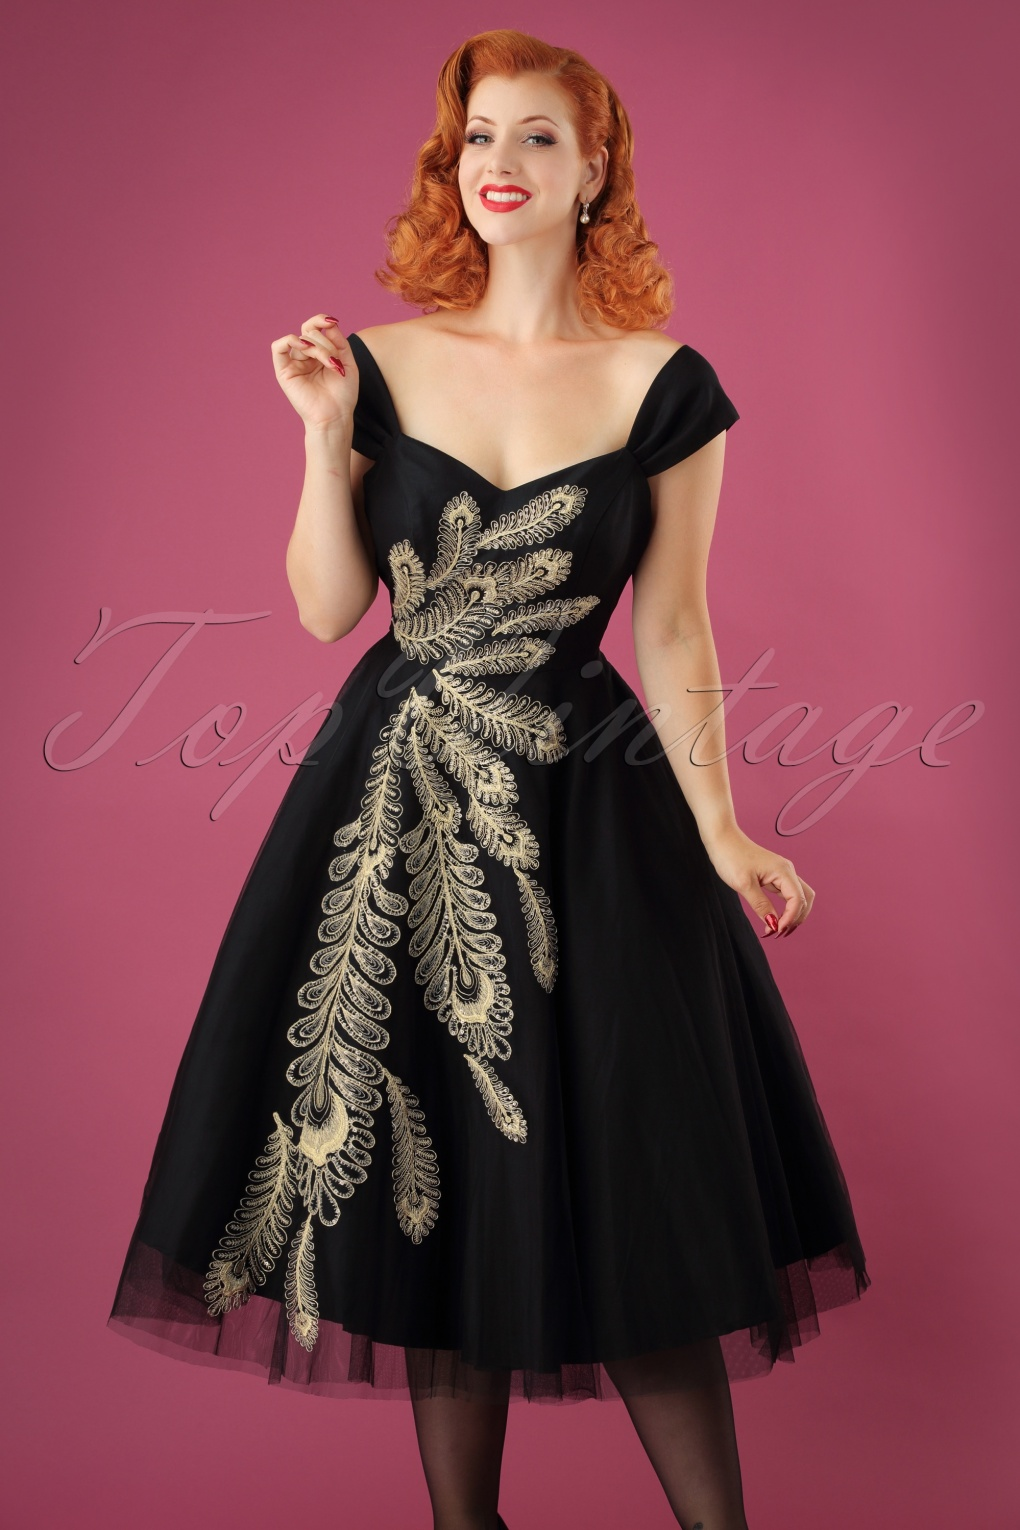 1950s Dresses, 50s Dresses | 1950s Style Dresses 50s Scarlett Peacock Occasion Gown in Black £171.21 AT vintagedancer.com